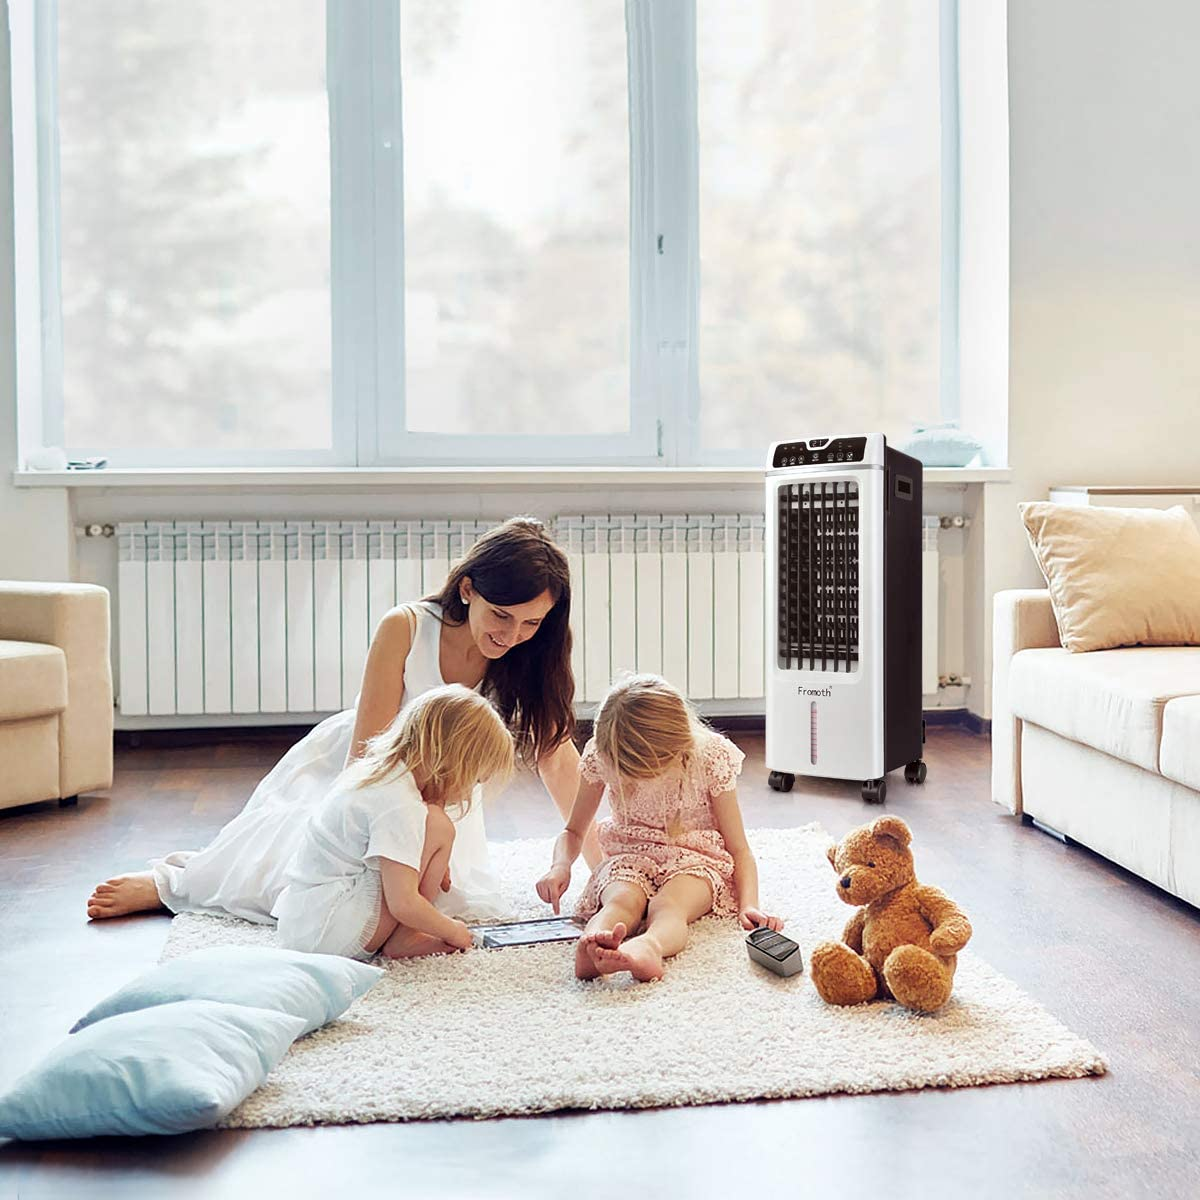 Portable Air Conditioner Suitable Home Office AC Conditioning for 125 Square Feet Quiet Mobile Air Cooler with Ice Tray /& Remote Control 7.5-Hour Timer Function Low Energy with Fan /& Humidifier